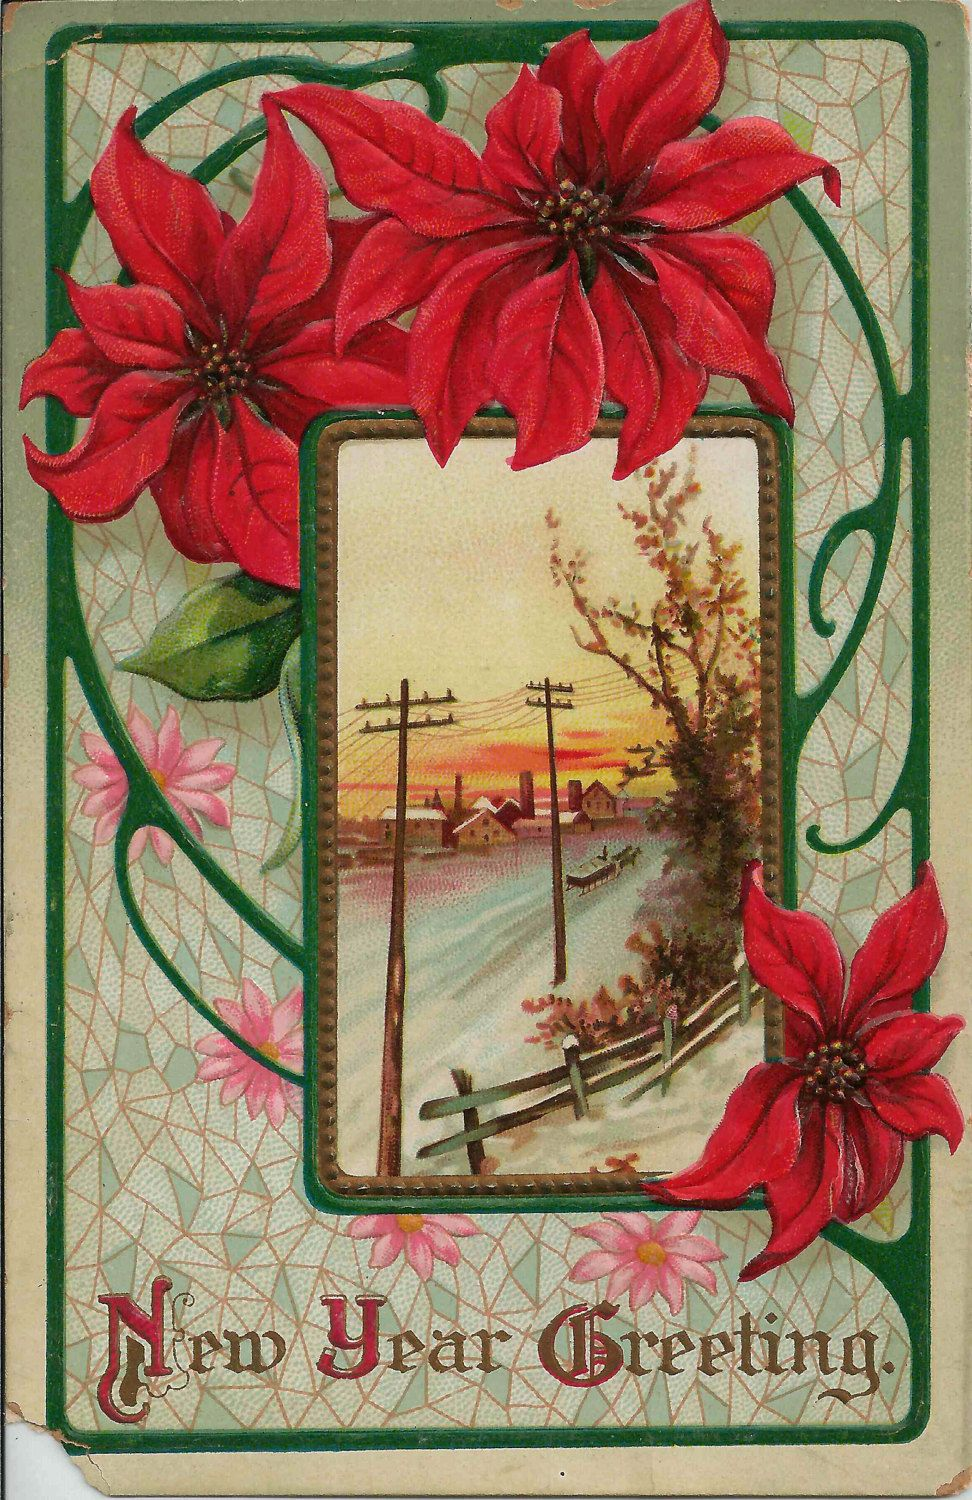 1911 New Year Greeting Postcard Featuring Lovely Red Poinsettias And